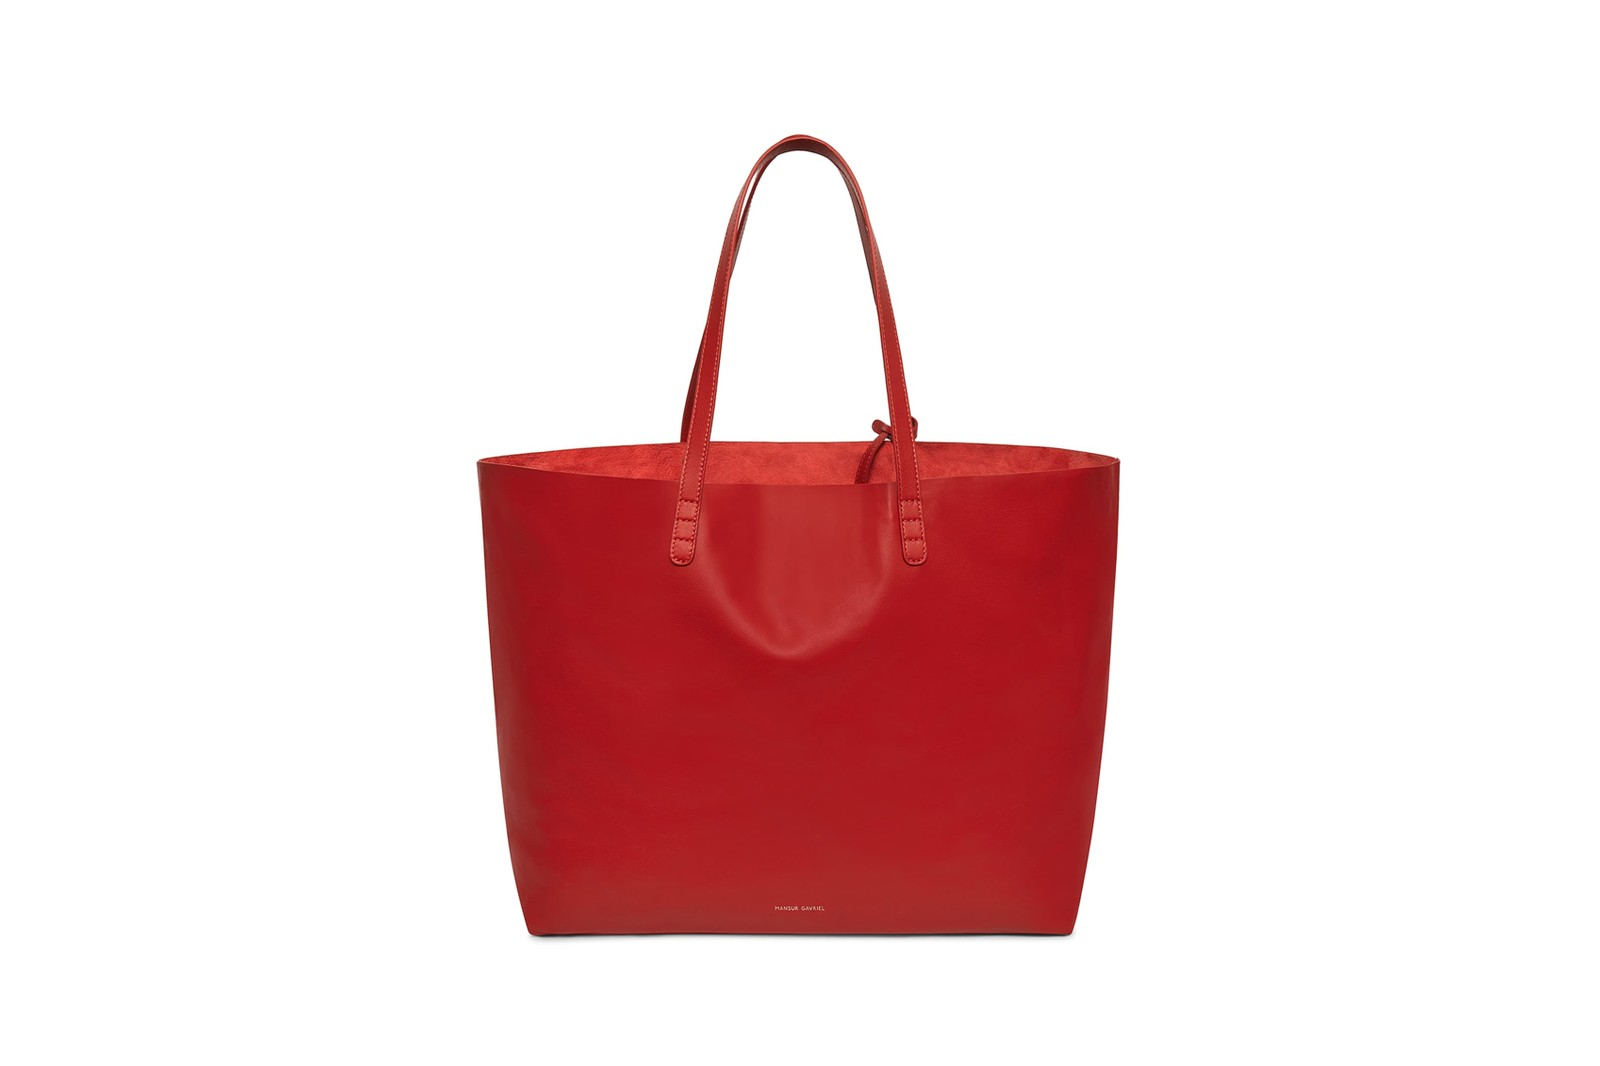 Best Reusable Grocery Shopping Bags Totes PLASTIC PAPER PLACEHOLDER Bamboo